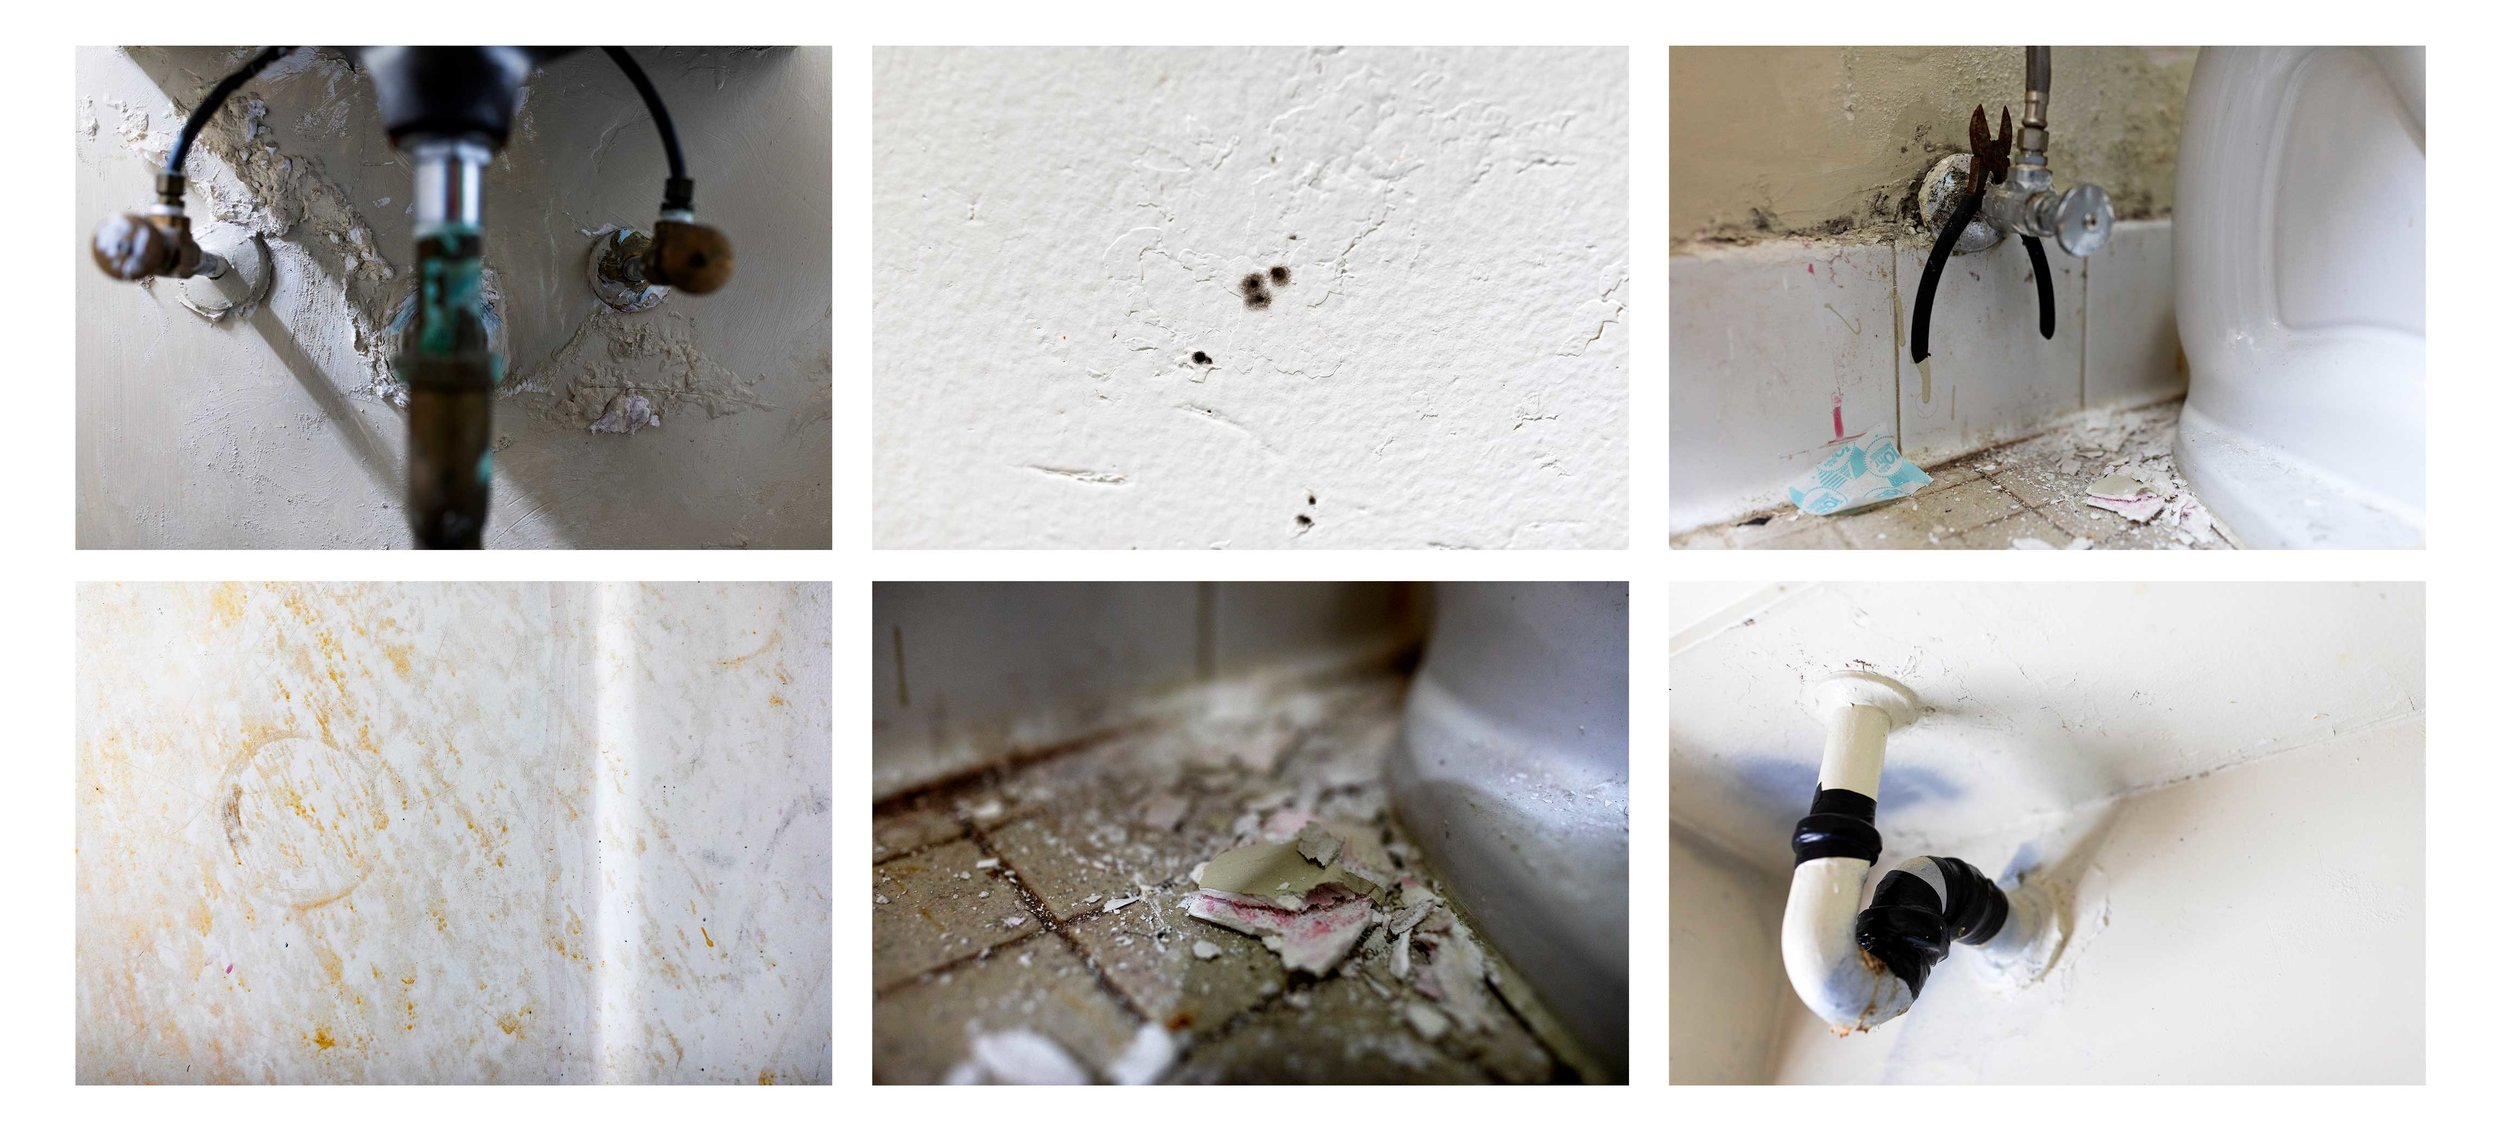 Details of damage in the Ramirezes' apartment include leaking pipes in the bathroom ceiling and under the bathroom sink, as well as mold spots and rust stains on the walls and peeling paint on the floor.